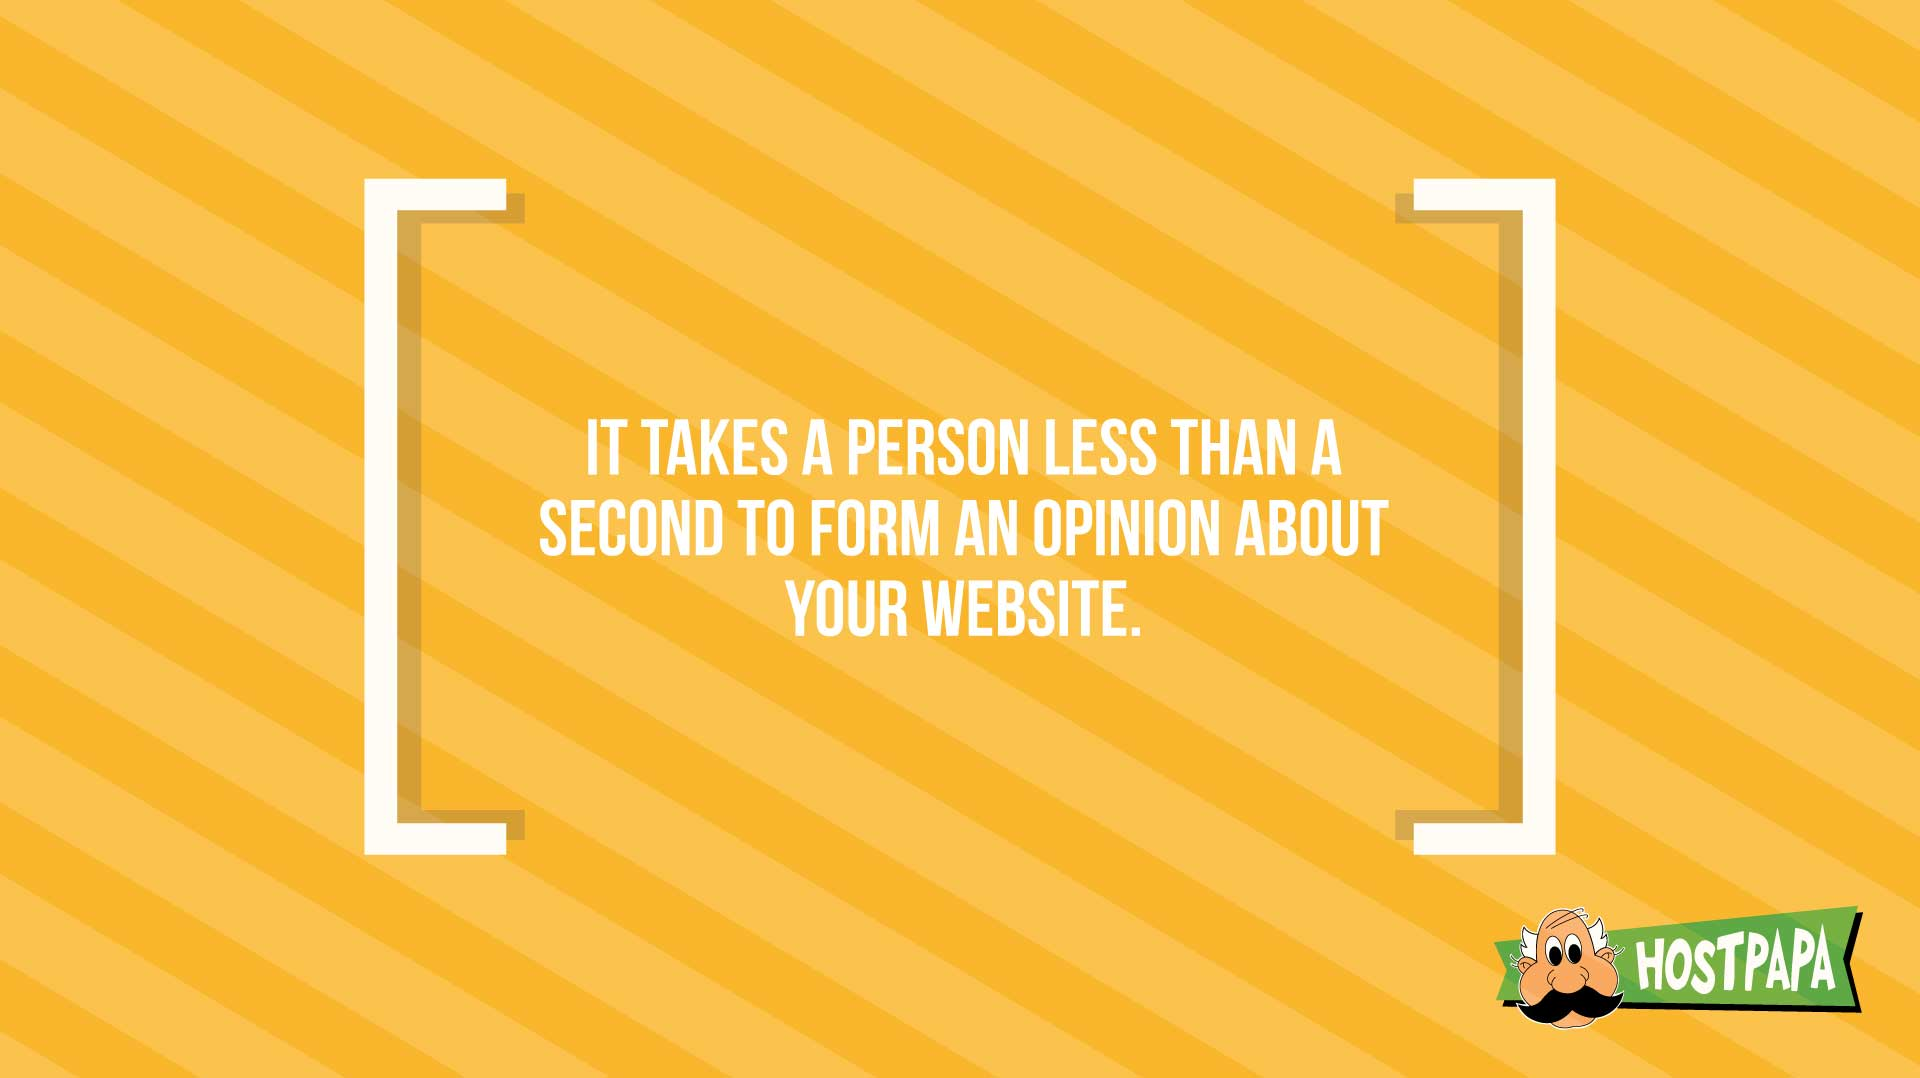 It takes a person less than a second to form an opinion about your website